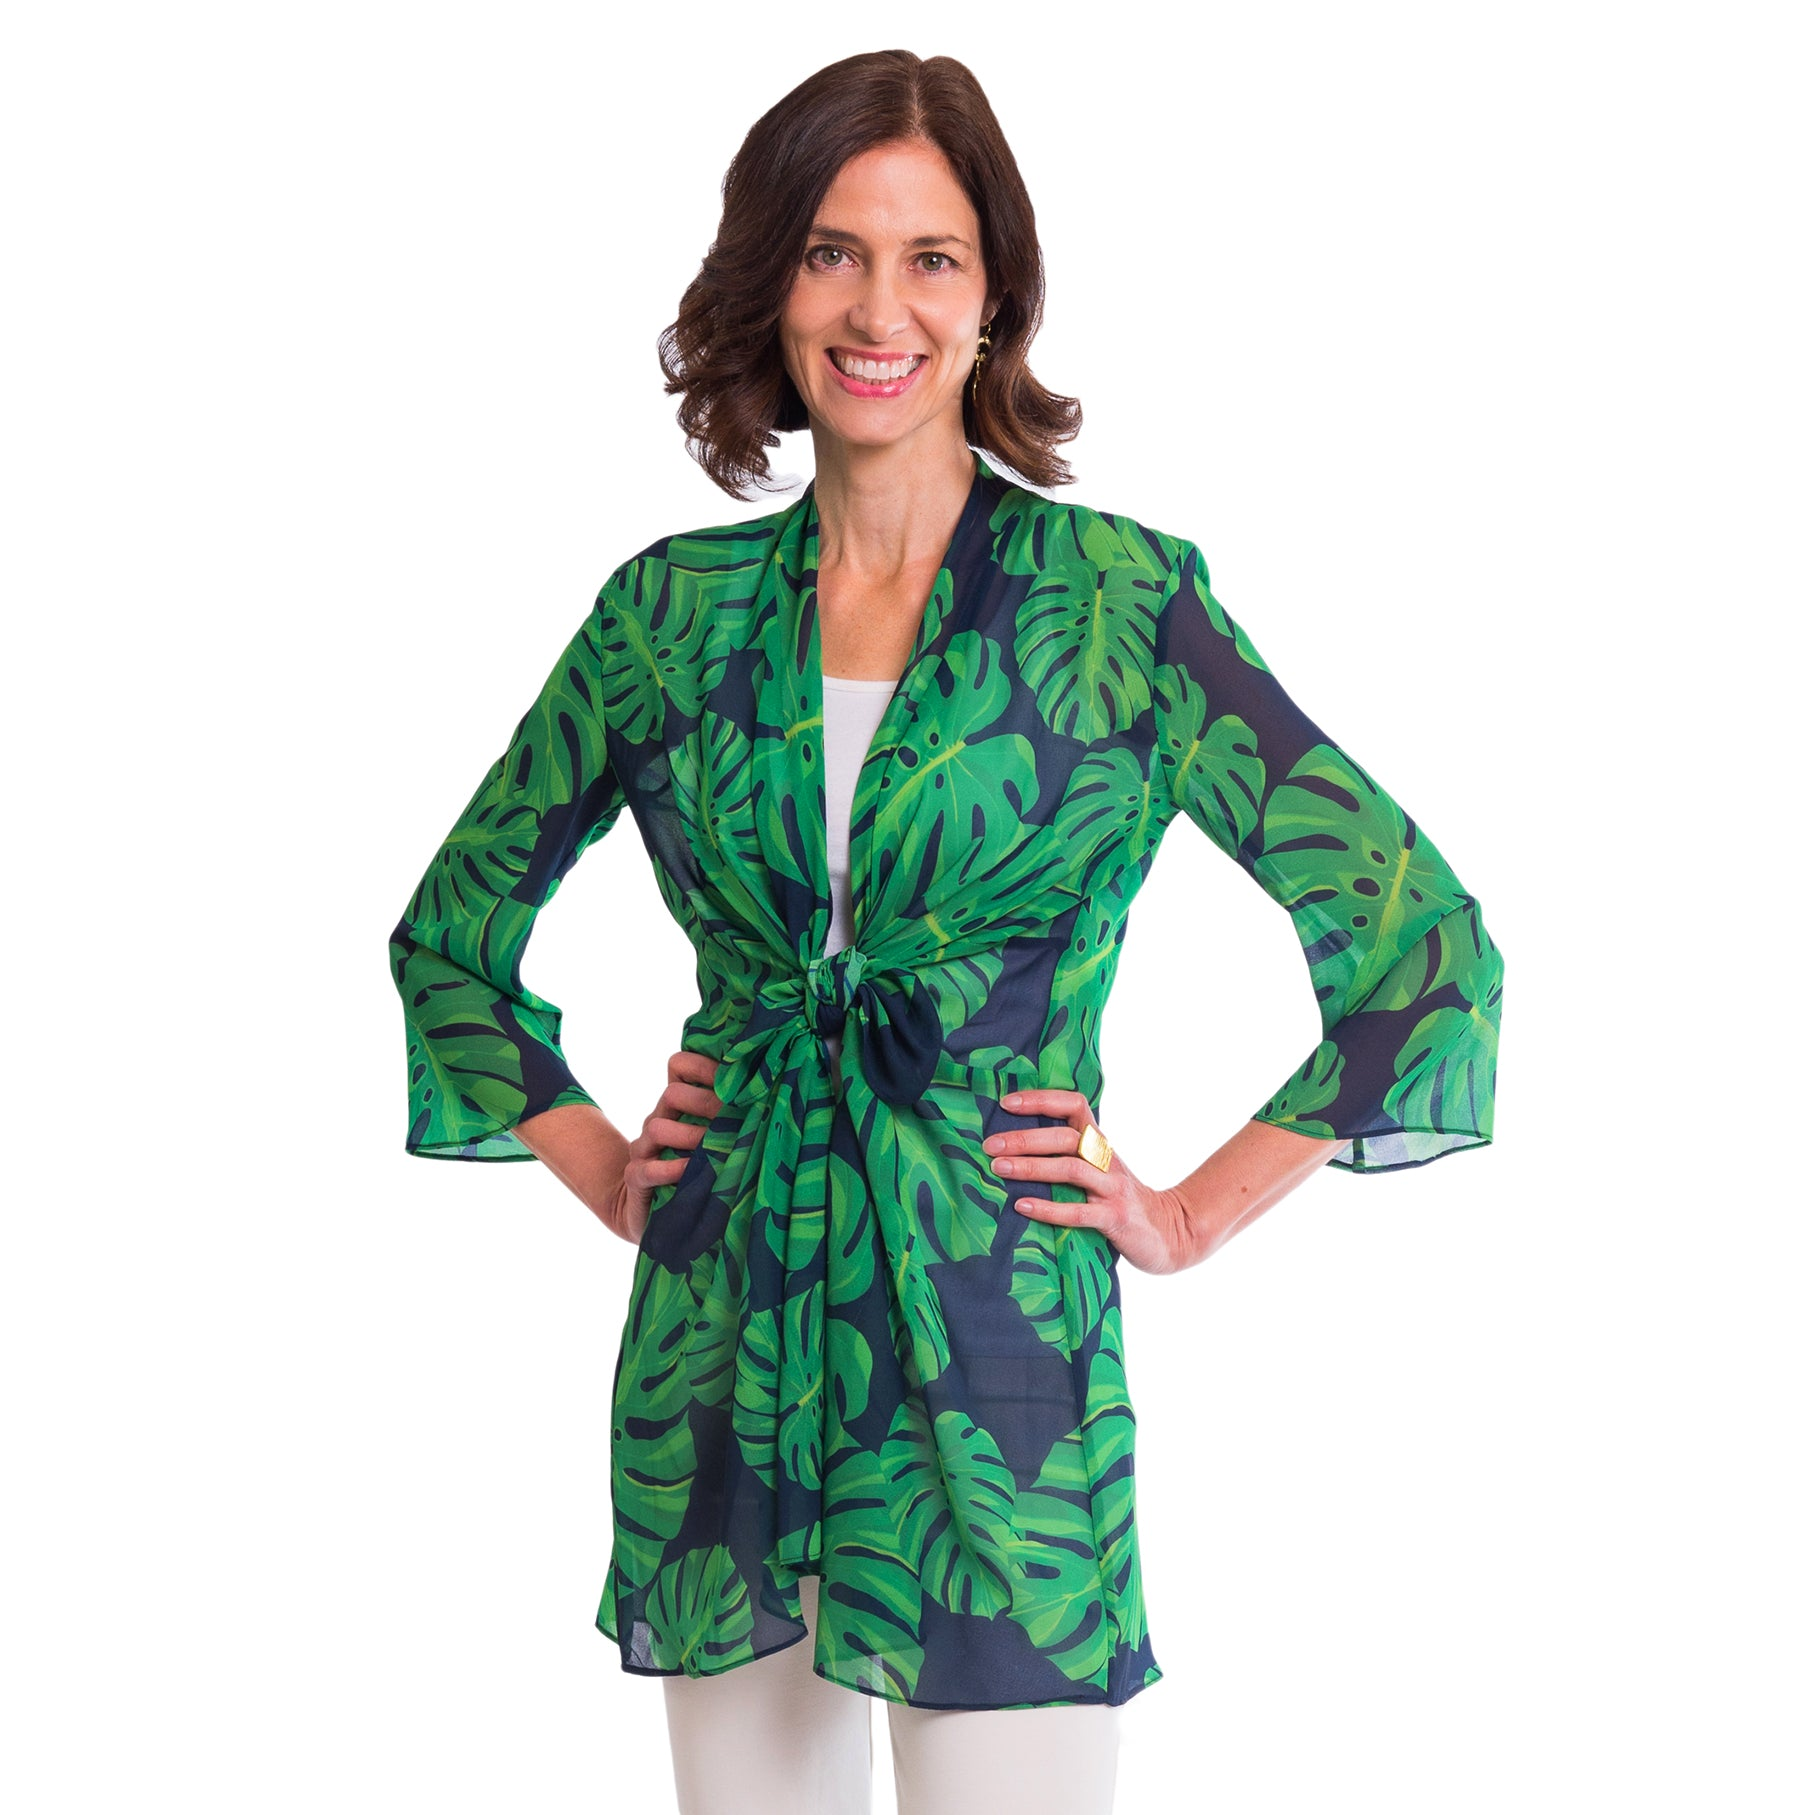 Nadia 3 way top in Navy Palm - Elizabeth Ackerman New York